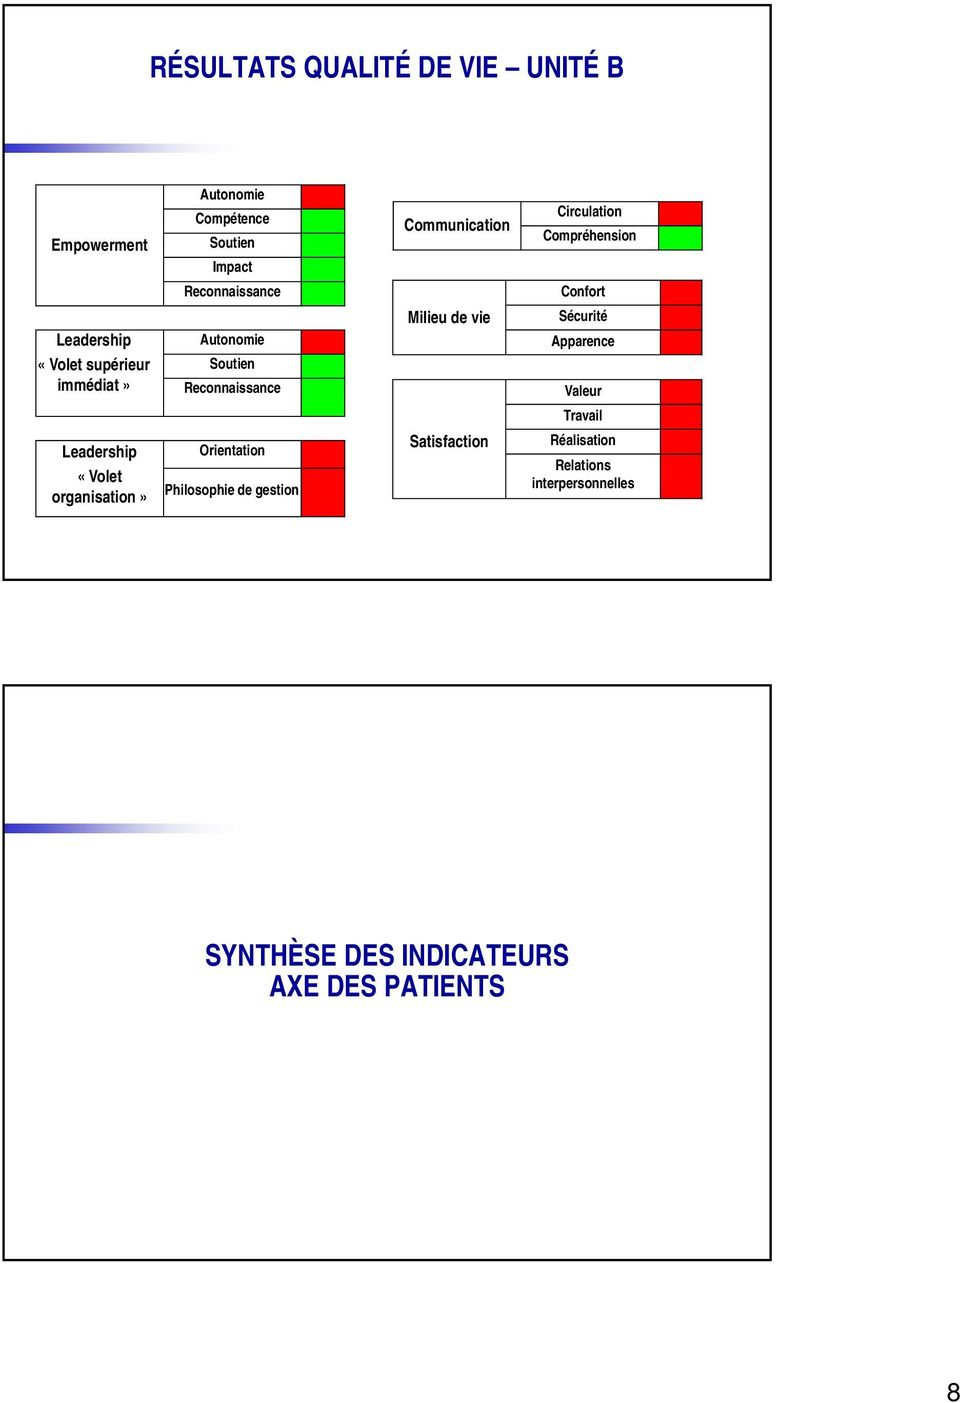 Orientation Philosophie de gestion Communication Milieu de vie Satisfaction Circulation Compréhension